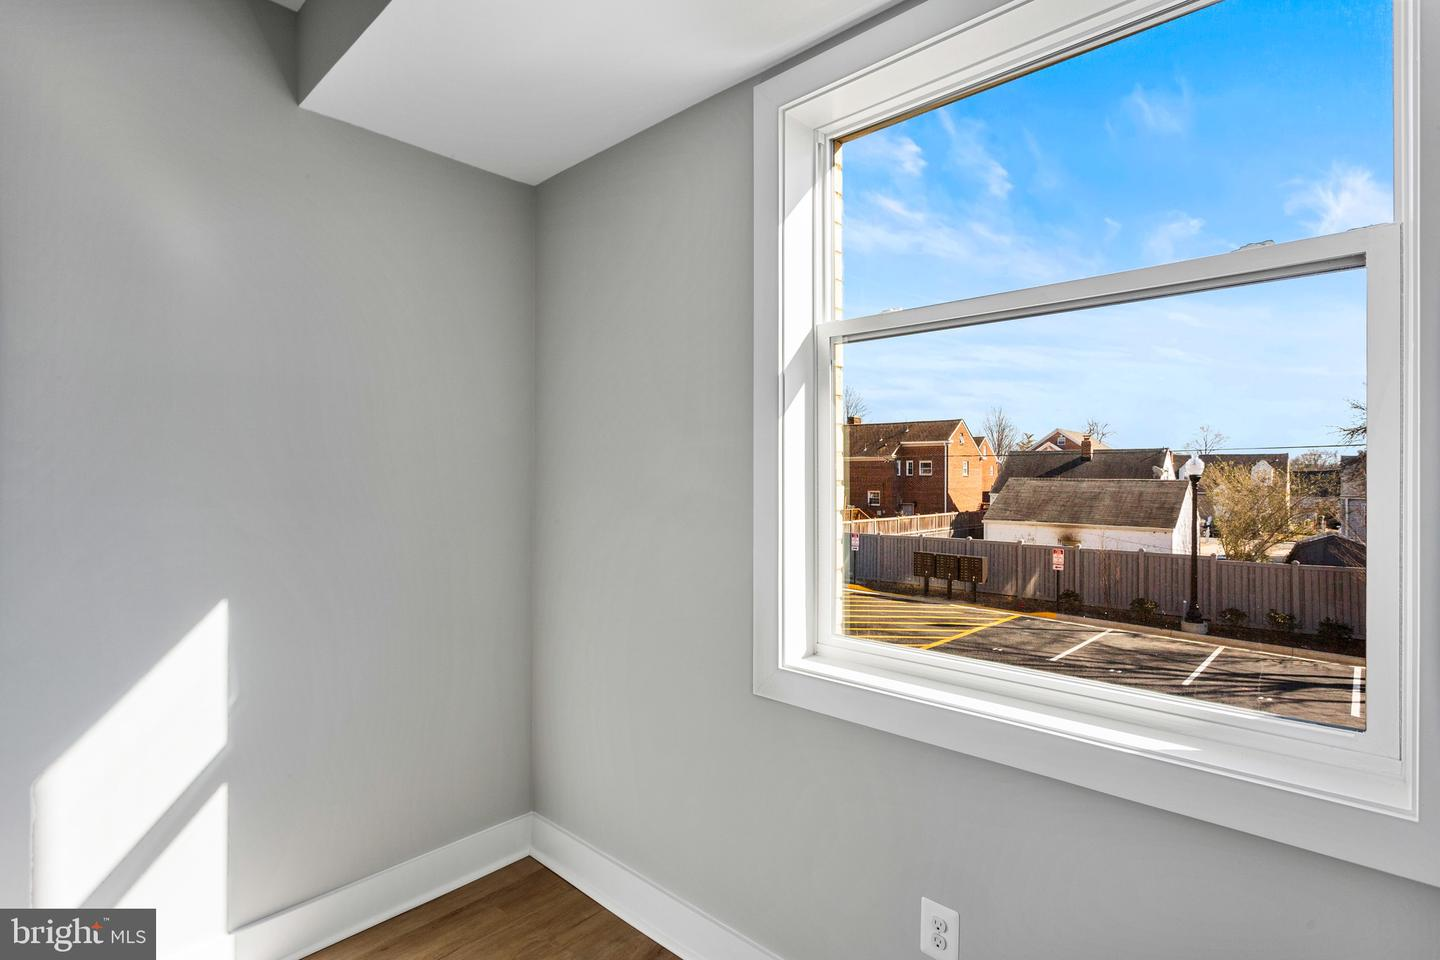 1100 SOUTH HIGHLAND STREET, ARLINGTON, Virginia 22204, 2 Bedrooms Bedrooms, ,1 BathroomBathrooms,Residential,For Sale,SOUTH HIGHLAND STREET,VAAR179094